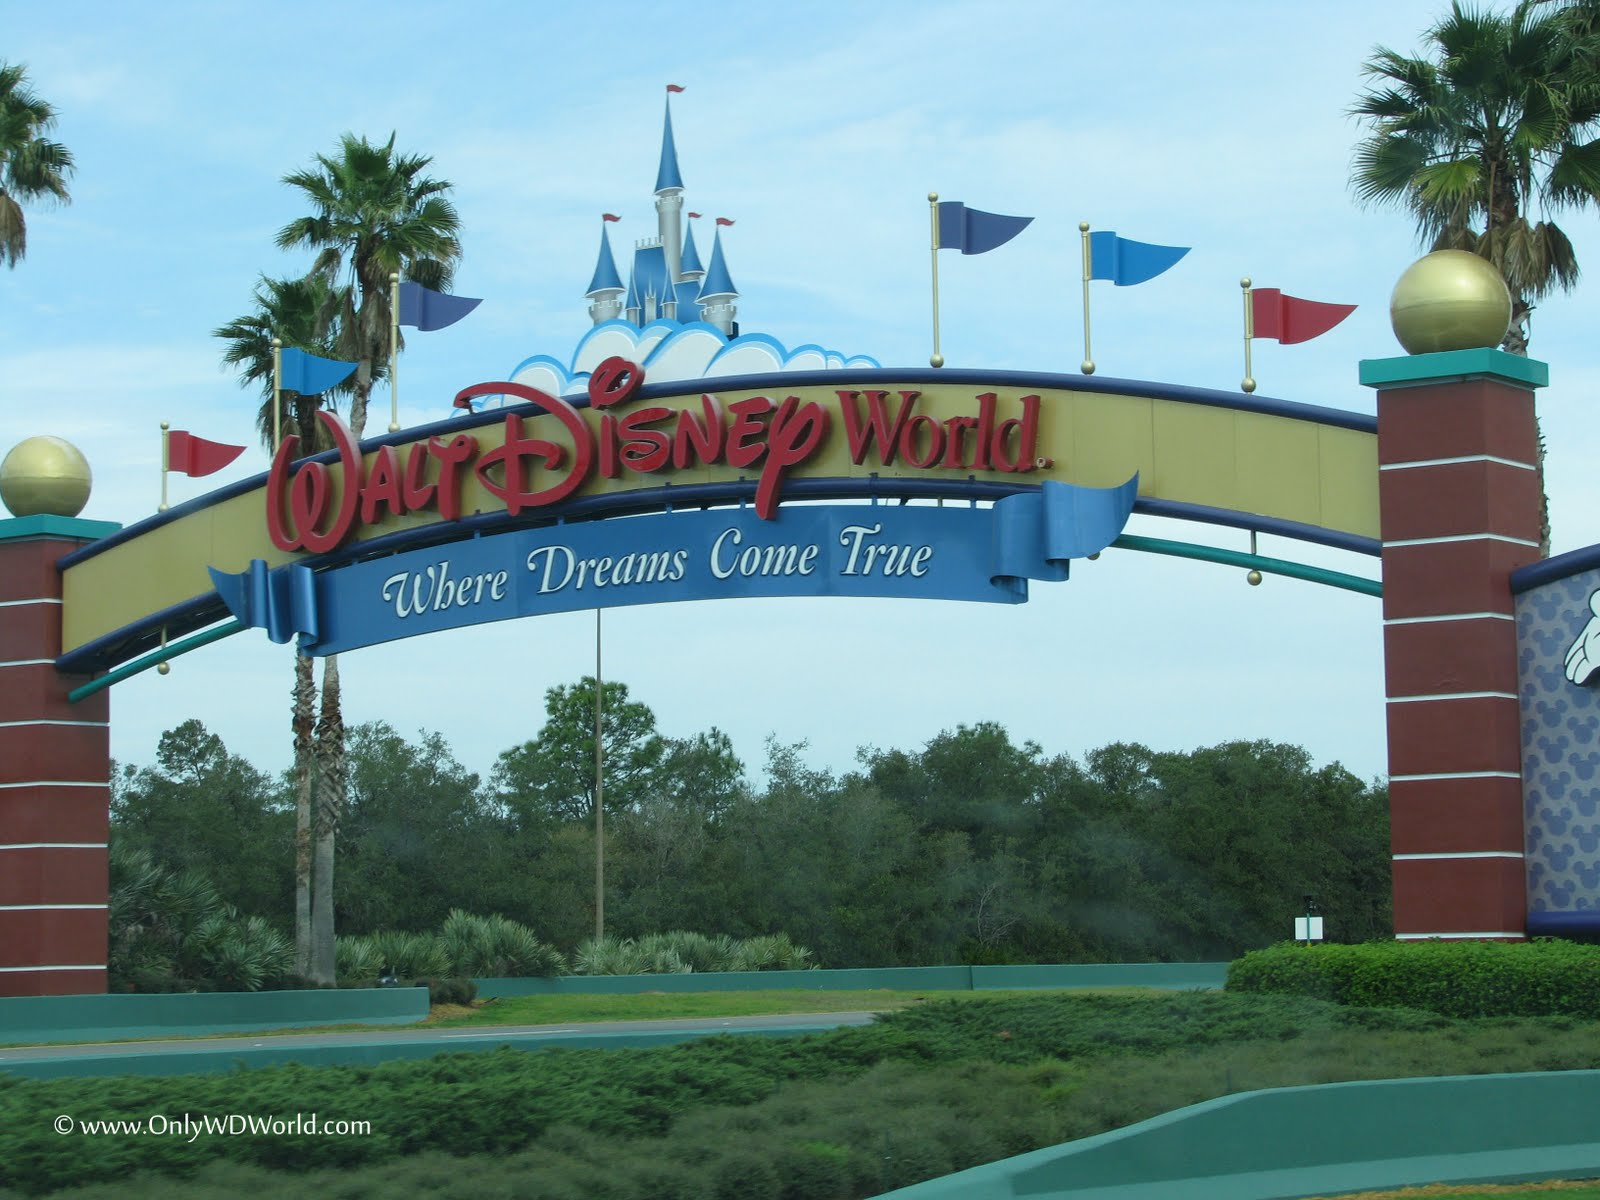 disney world vacation Cheap walt disney world vacations: find vacation packages to walt disney world on tripadvisor by comparing prices and reading walt disney world hotel reviews.